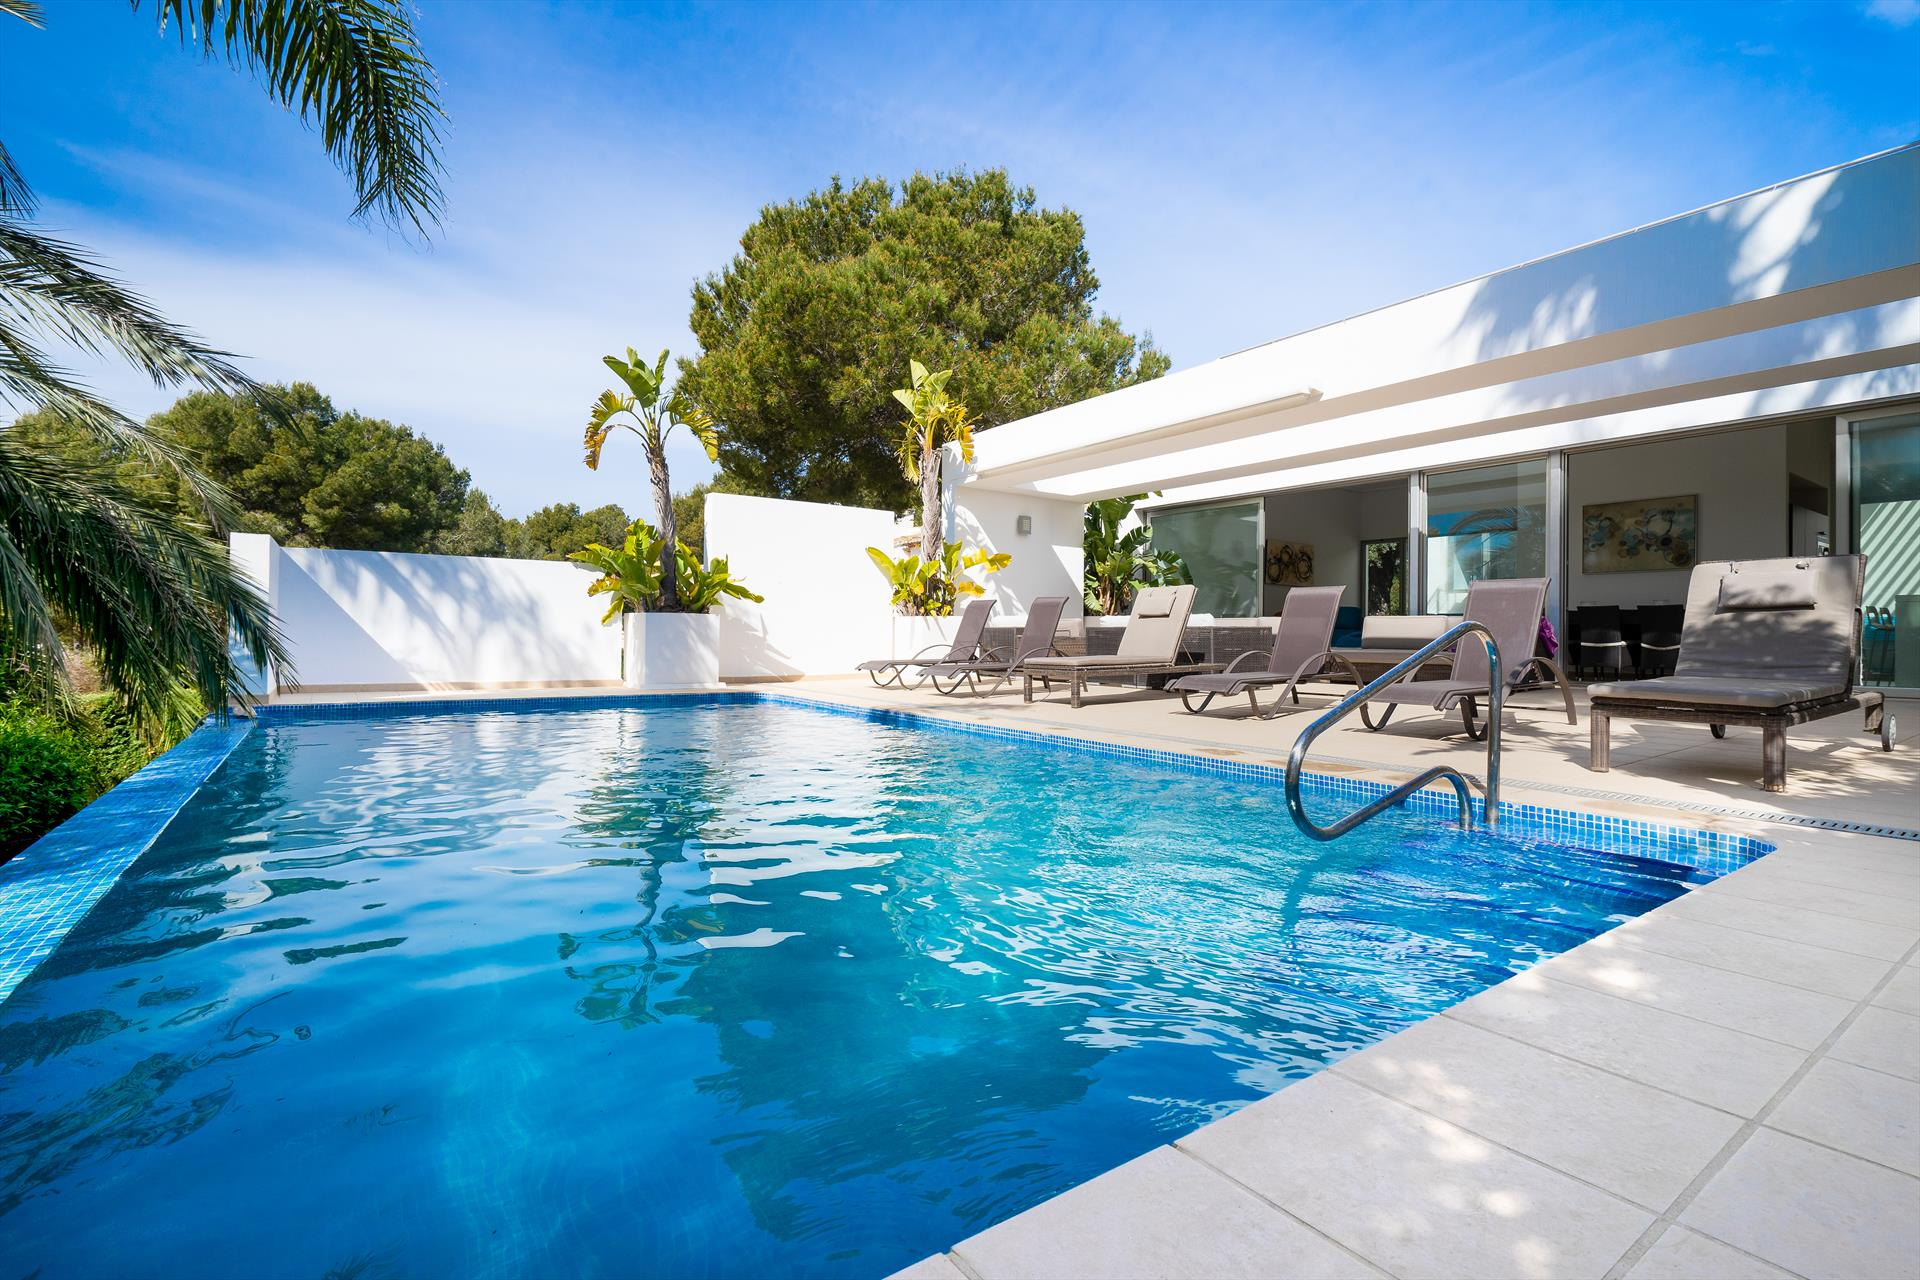 Casa Elche 4 pax, Modern and nice villa in Javea, on the Costa Blanca, Spain  with heated pool for 4 persons.....